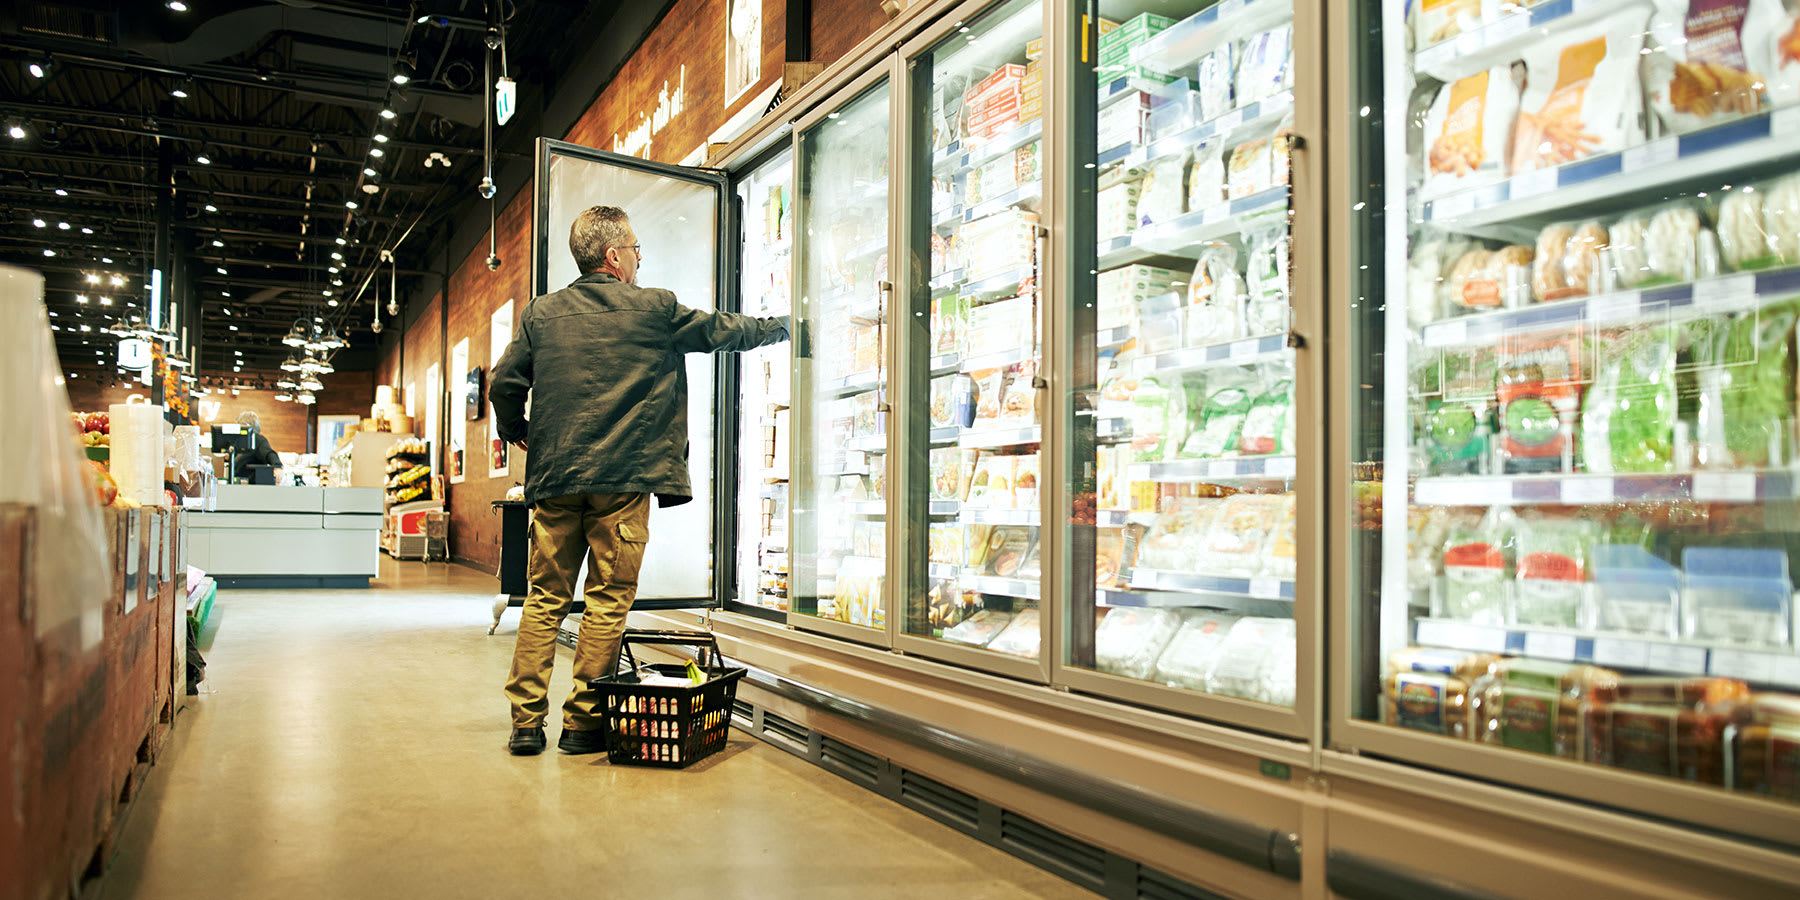 Man in grocery store freezer aisle opening freezer door to take product.